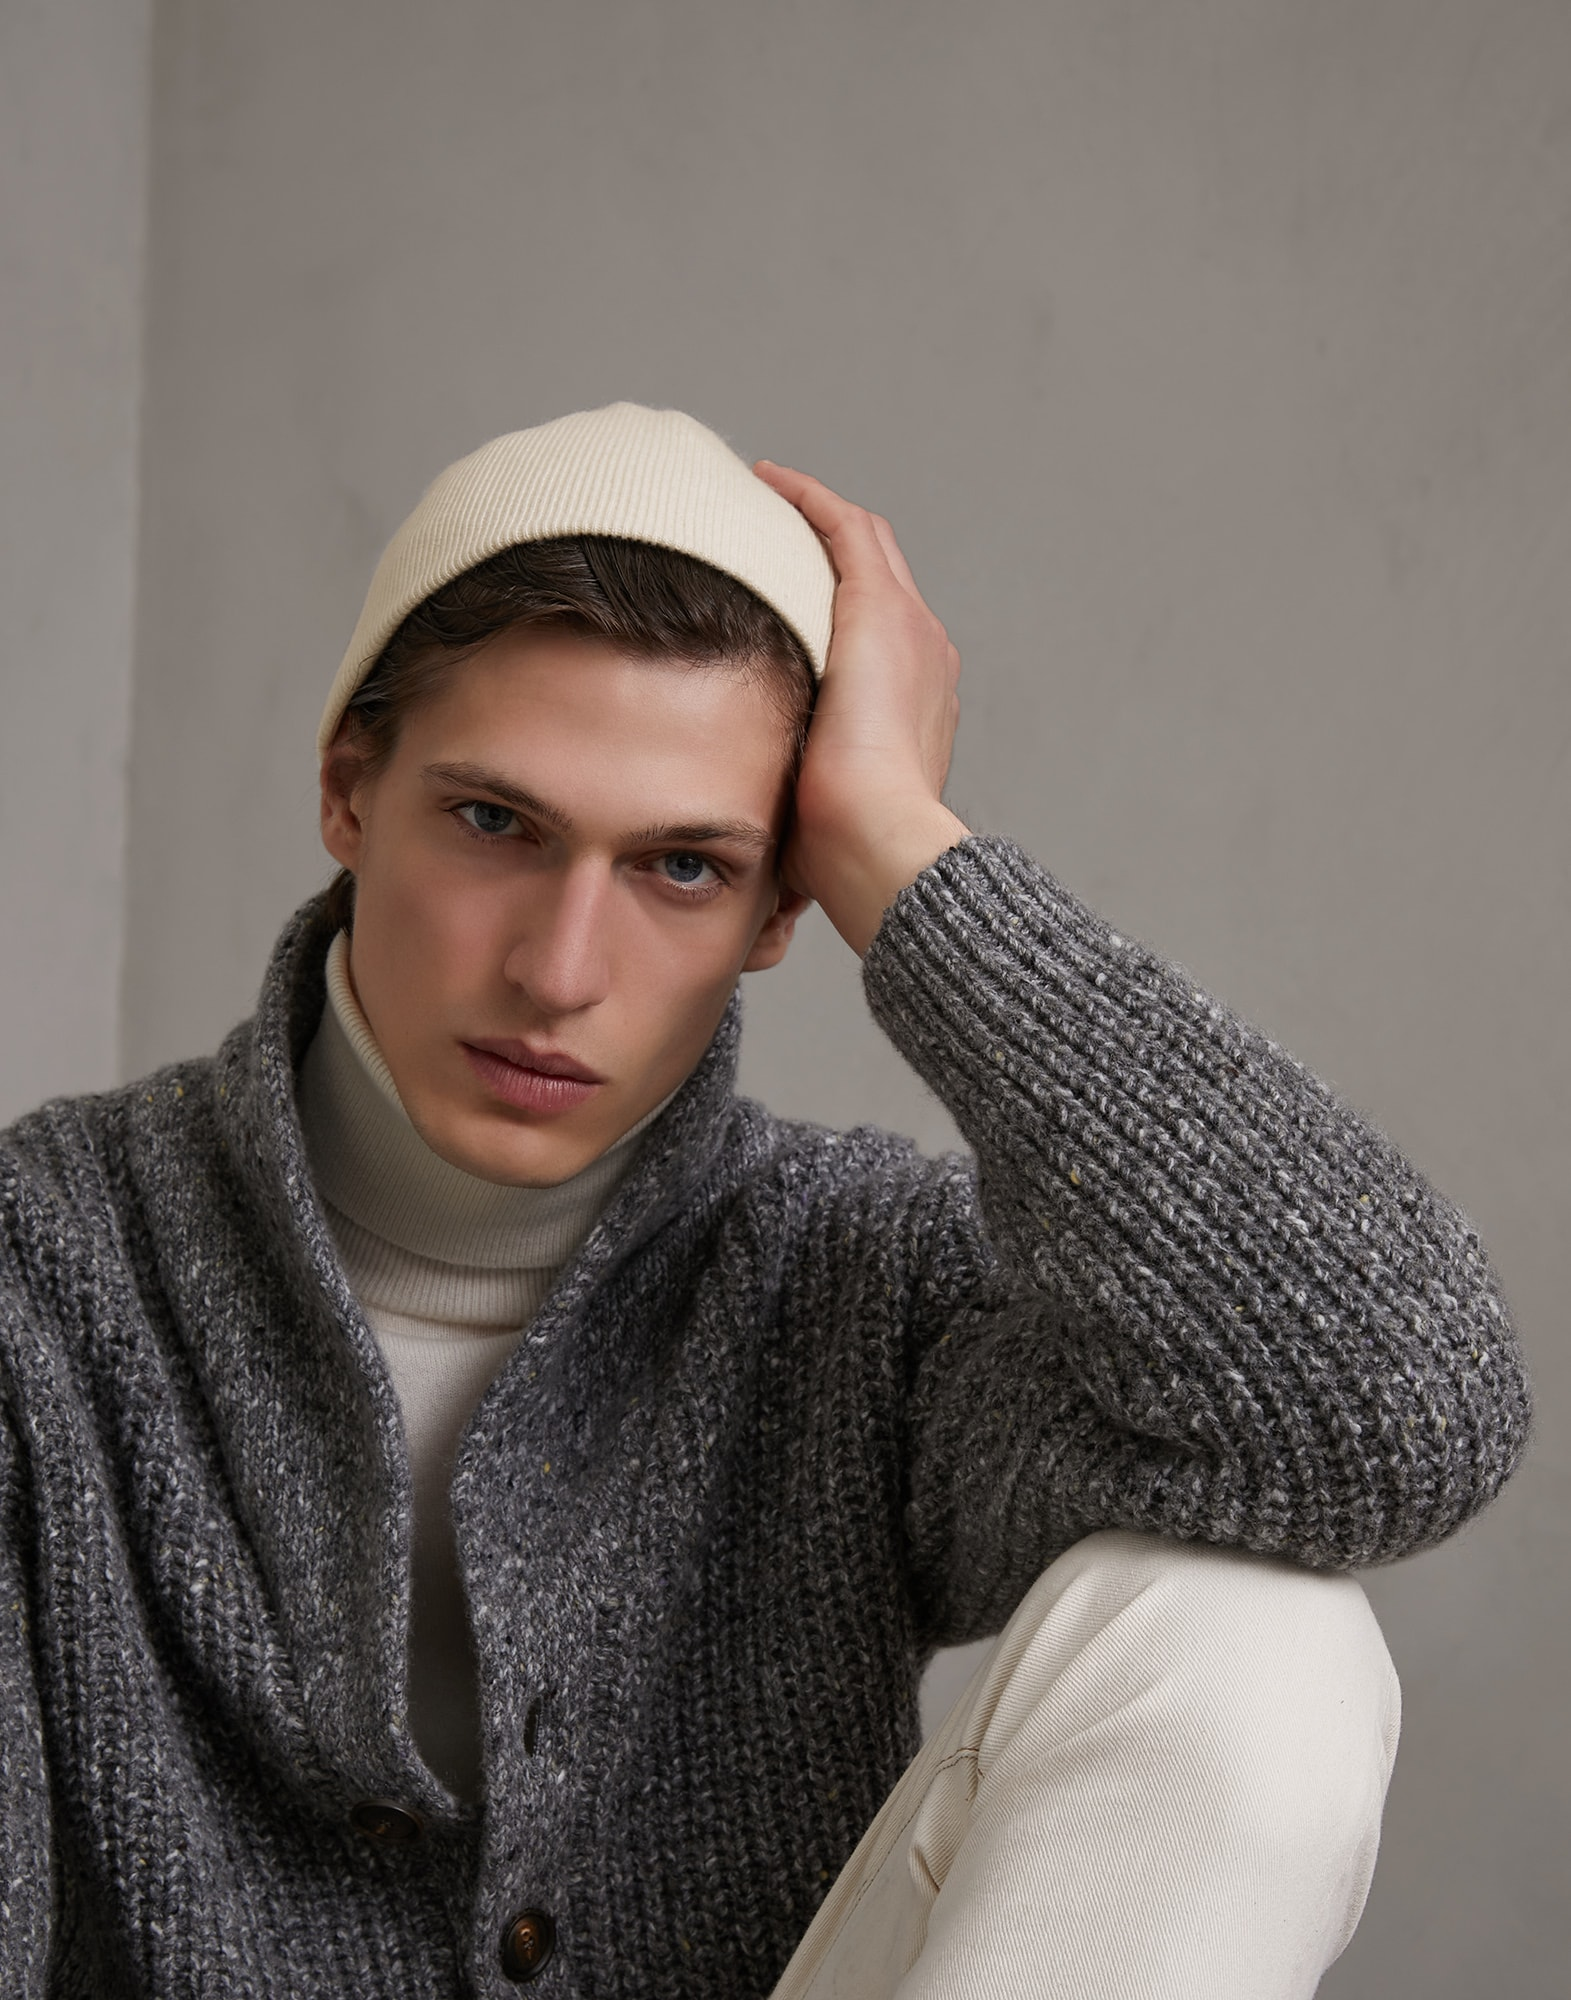 Skullcap - Editorial